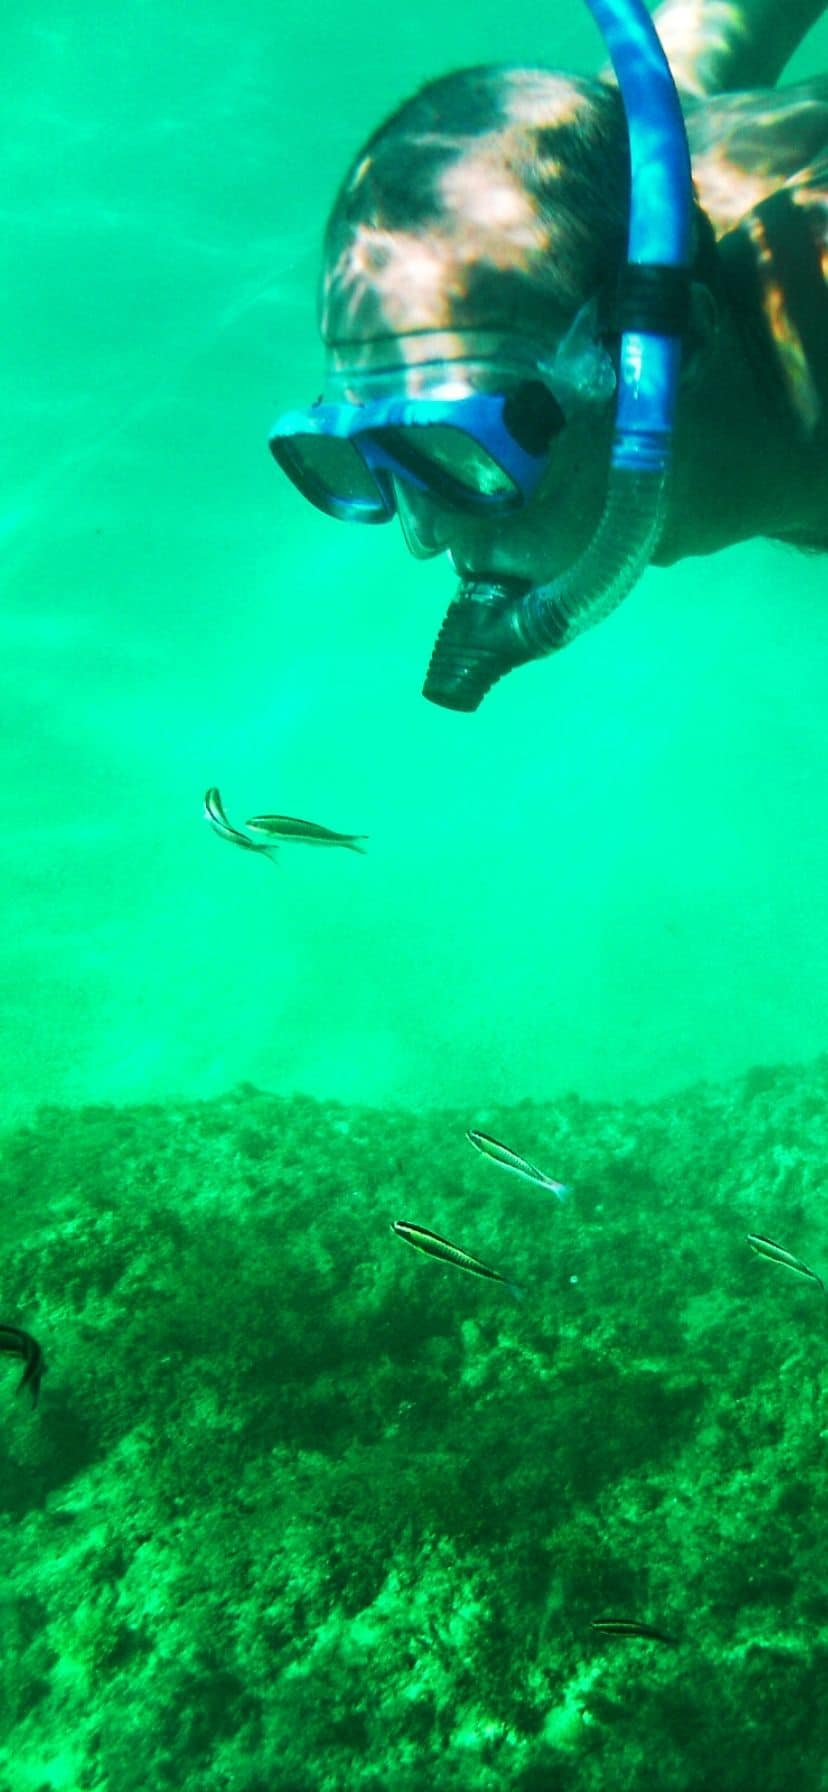 Underwater view while snorkeling in Cabo San Lucas